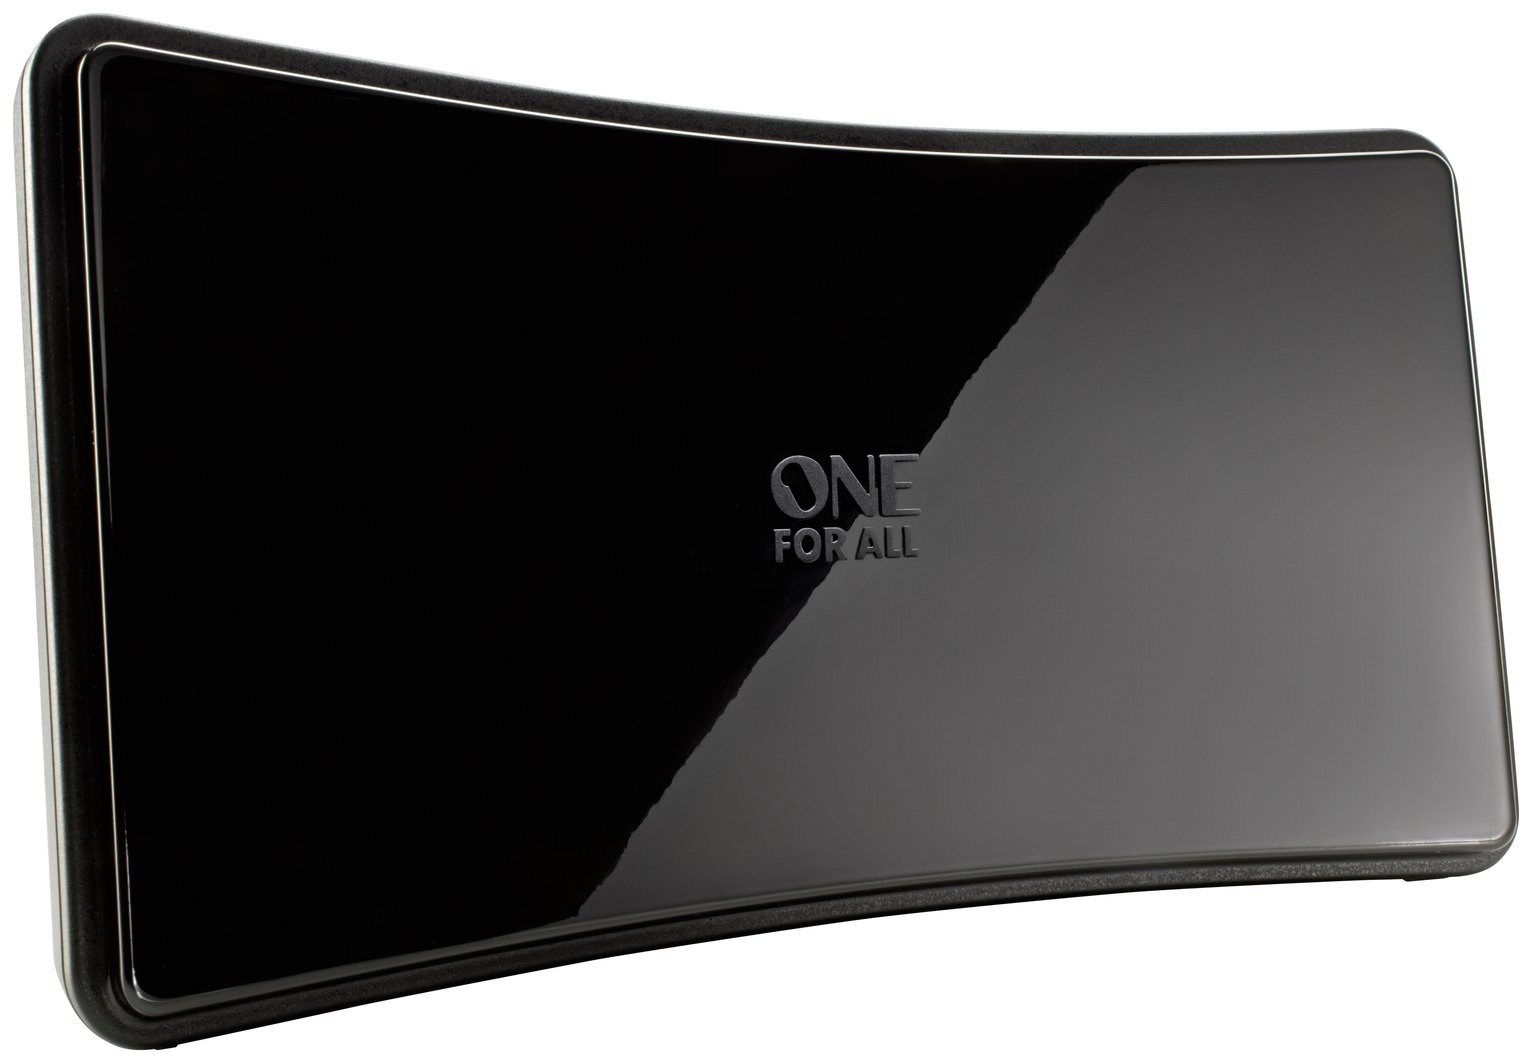 One For All SV9420 Amplified Indoor HD TV Aerial